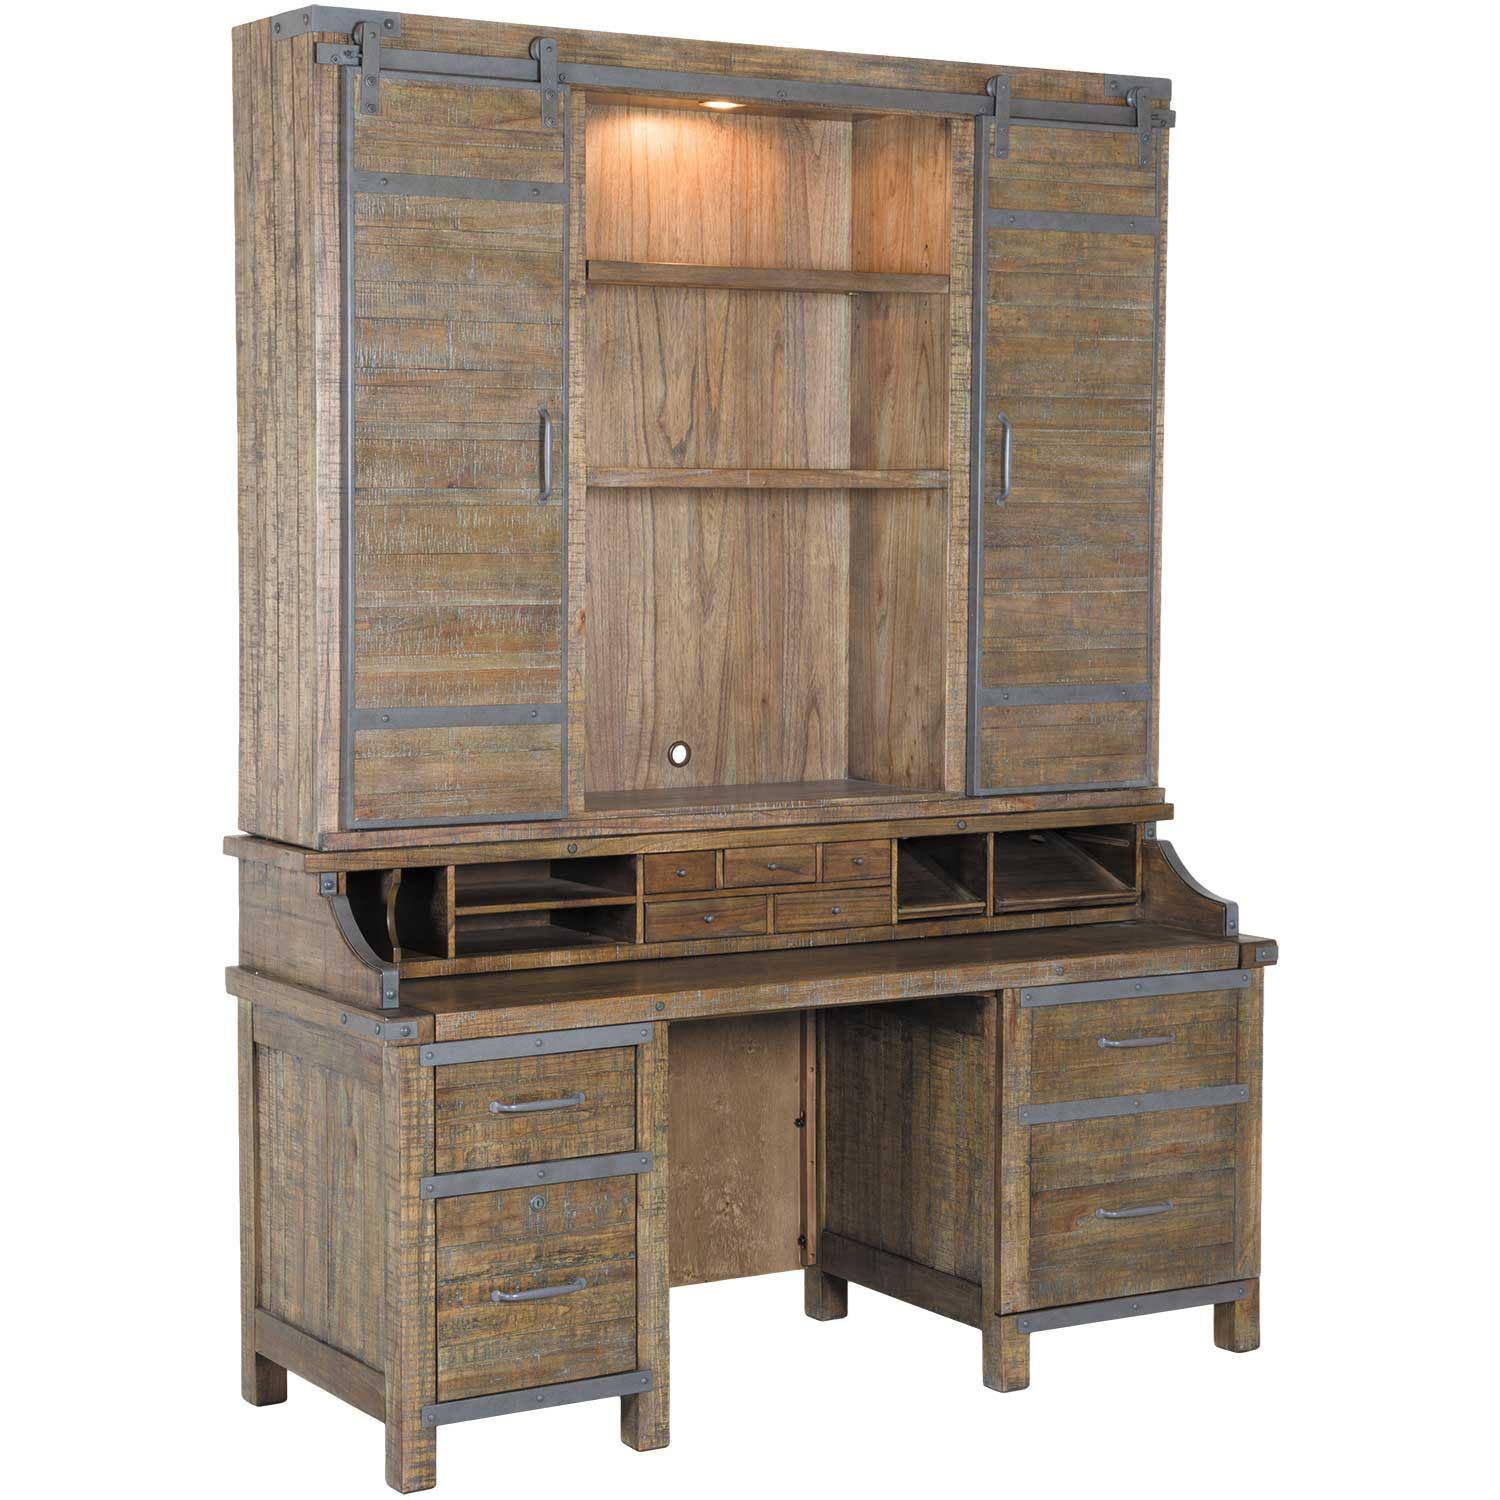 American Furniture Store: Artisan Revival Smart Top Credenza With Hutch